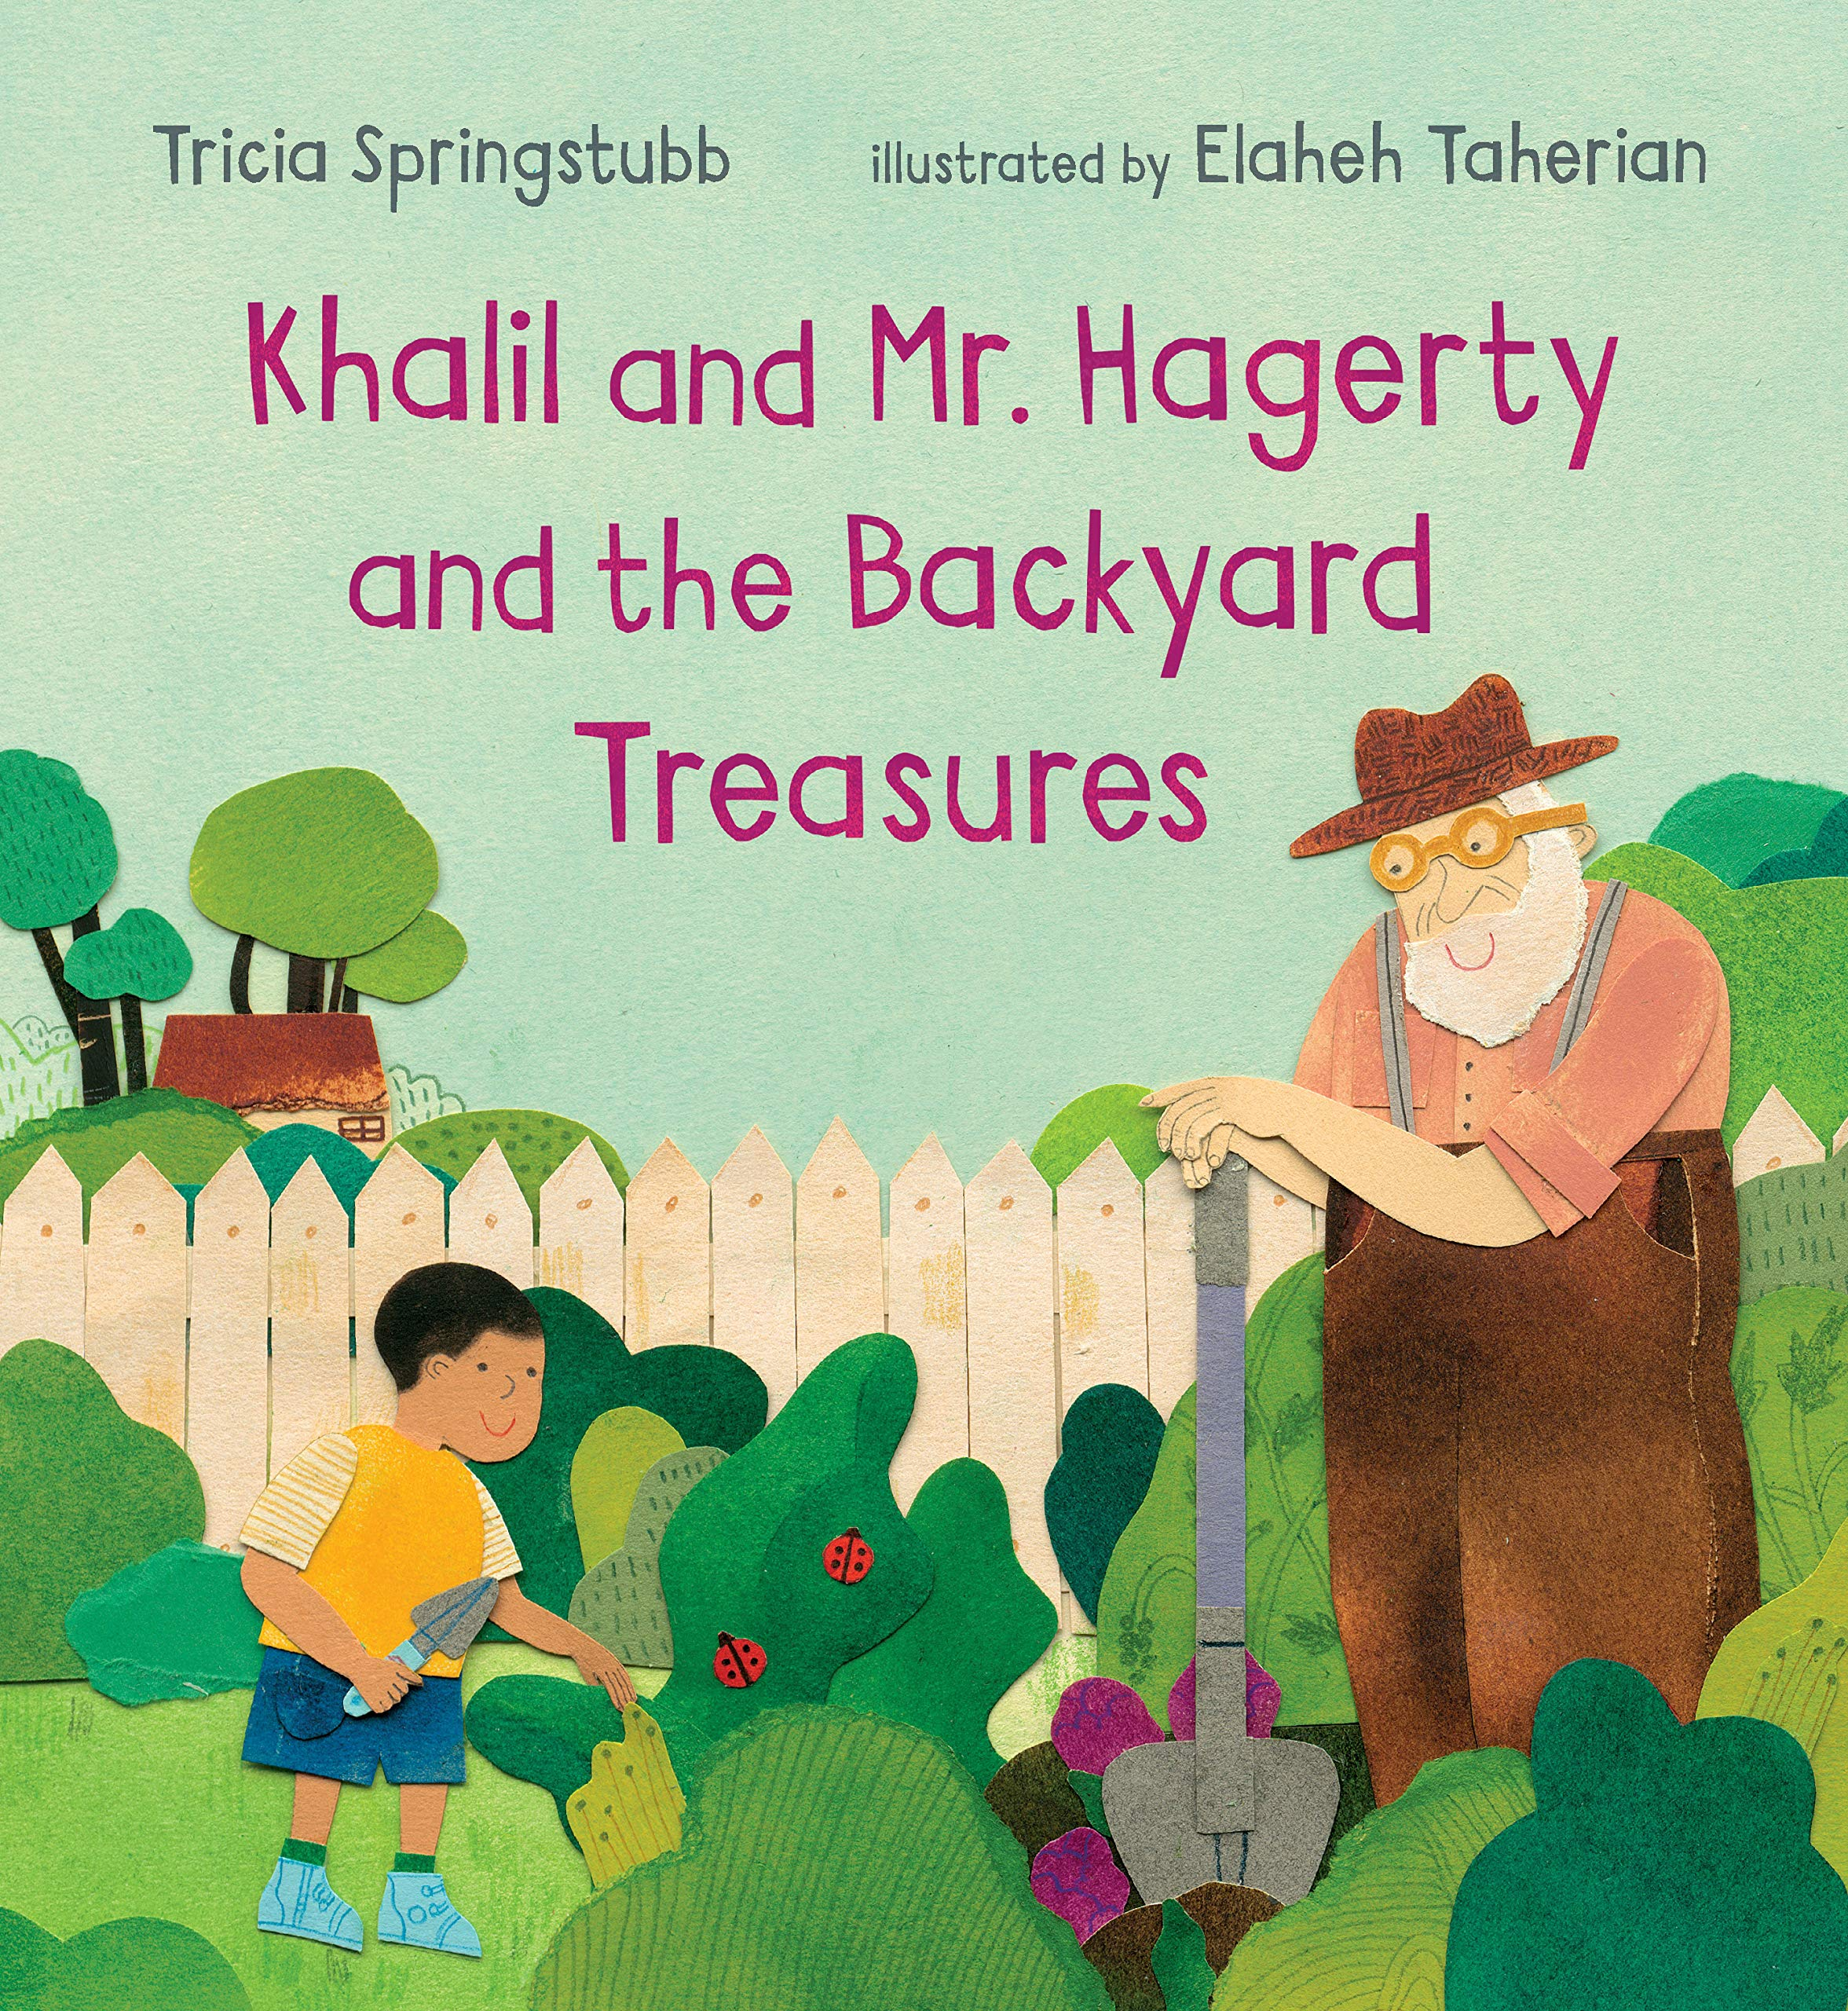 Khalil and Mr. Hagerty and the Backyard Treasures by Tricia Springstubb